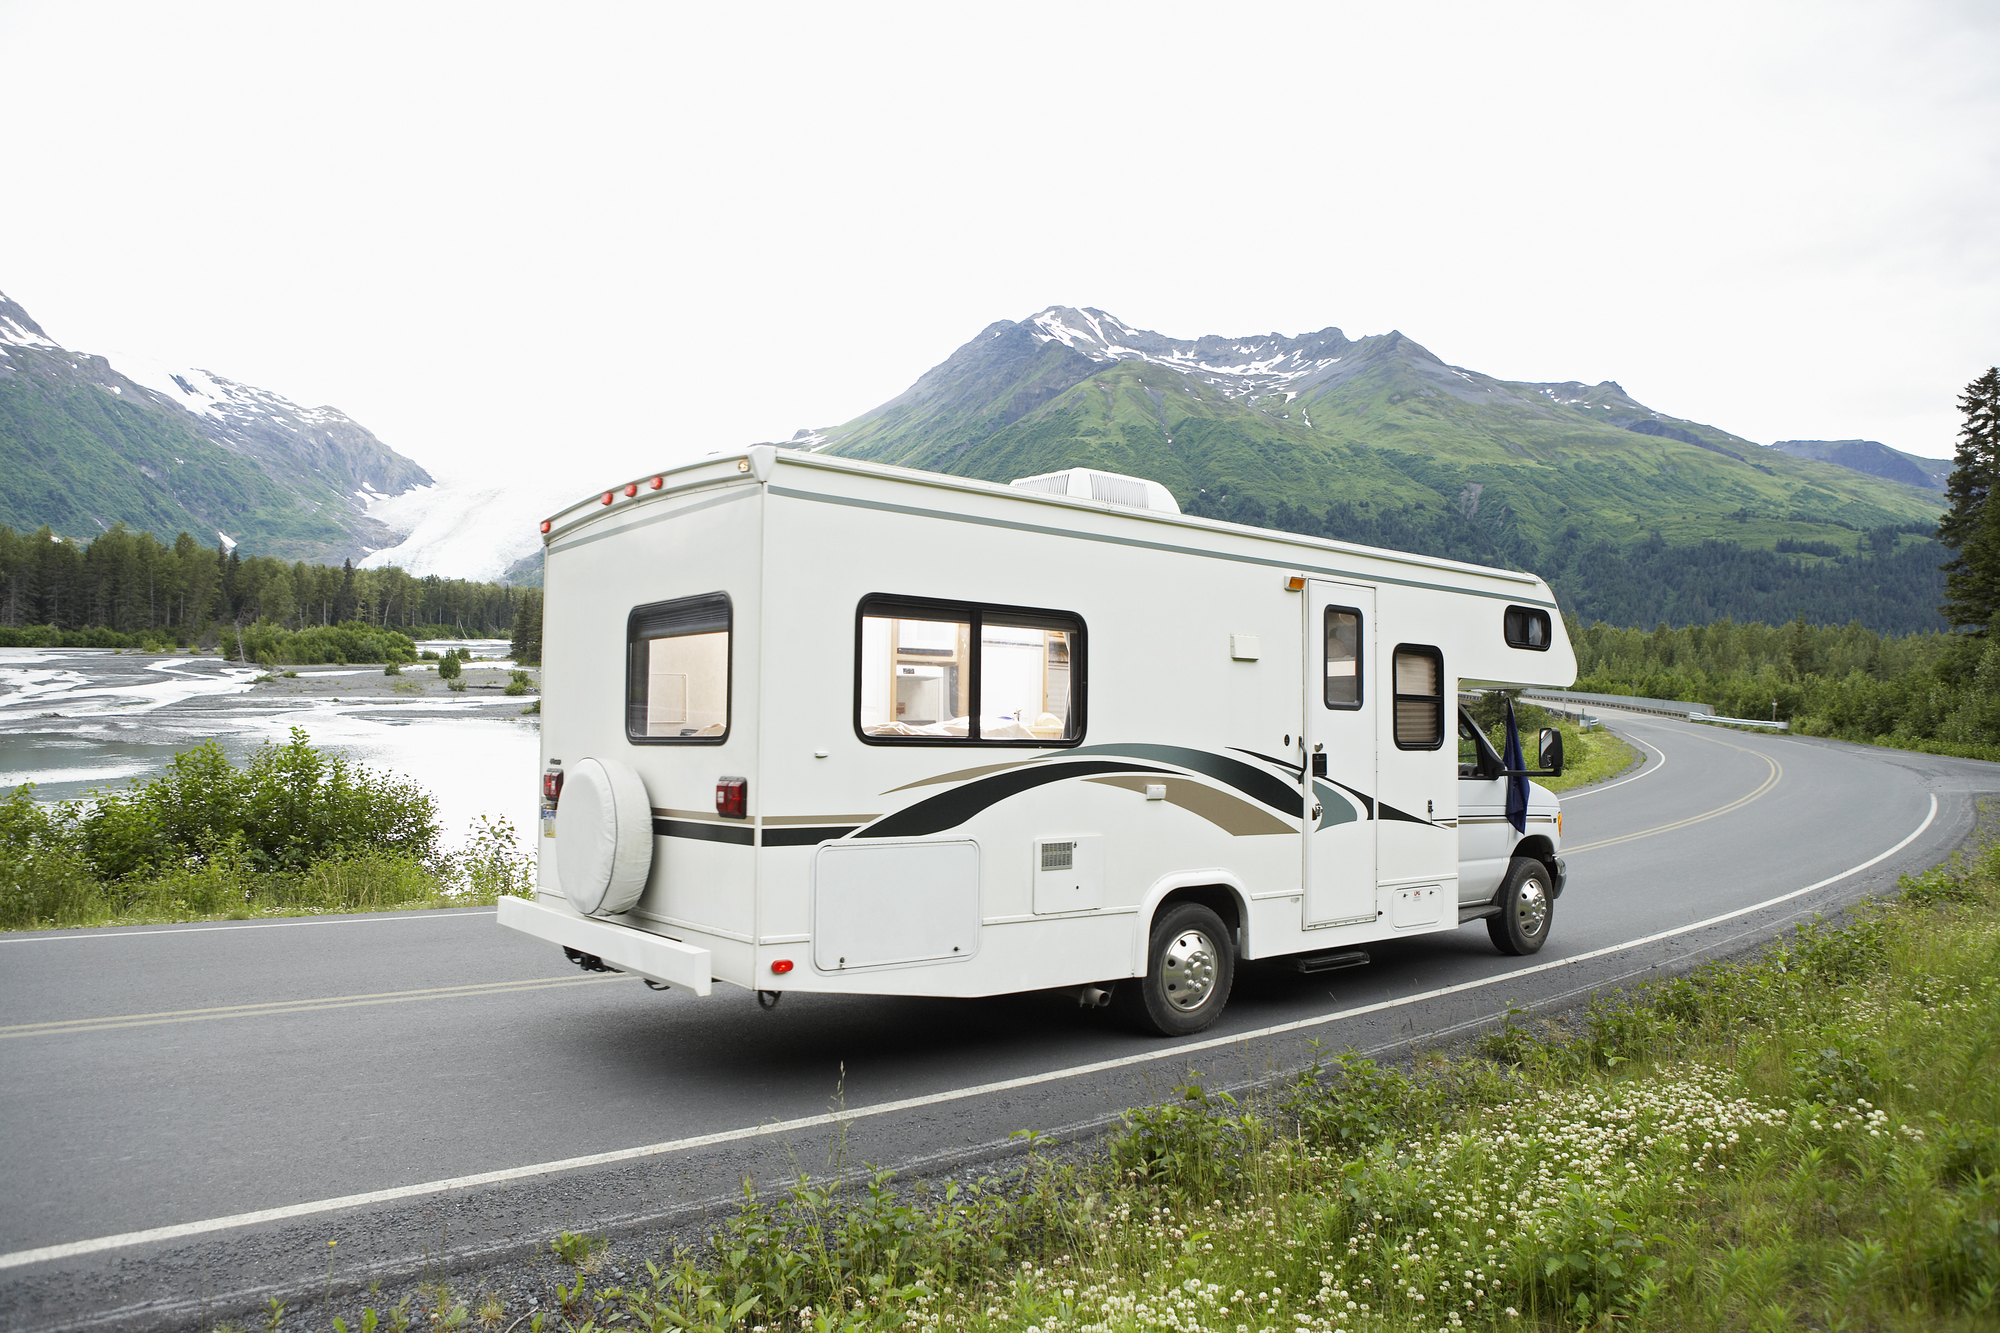 How to Choose the Right Propane Tank for Your Motorhome